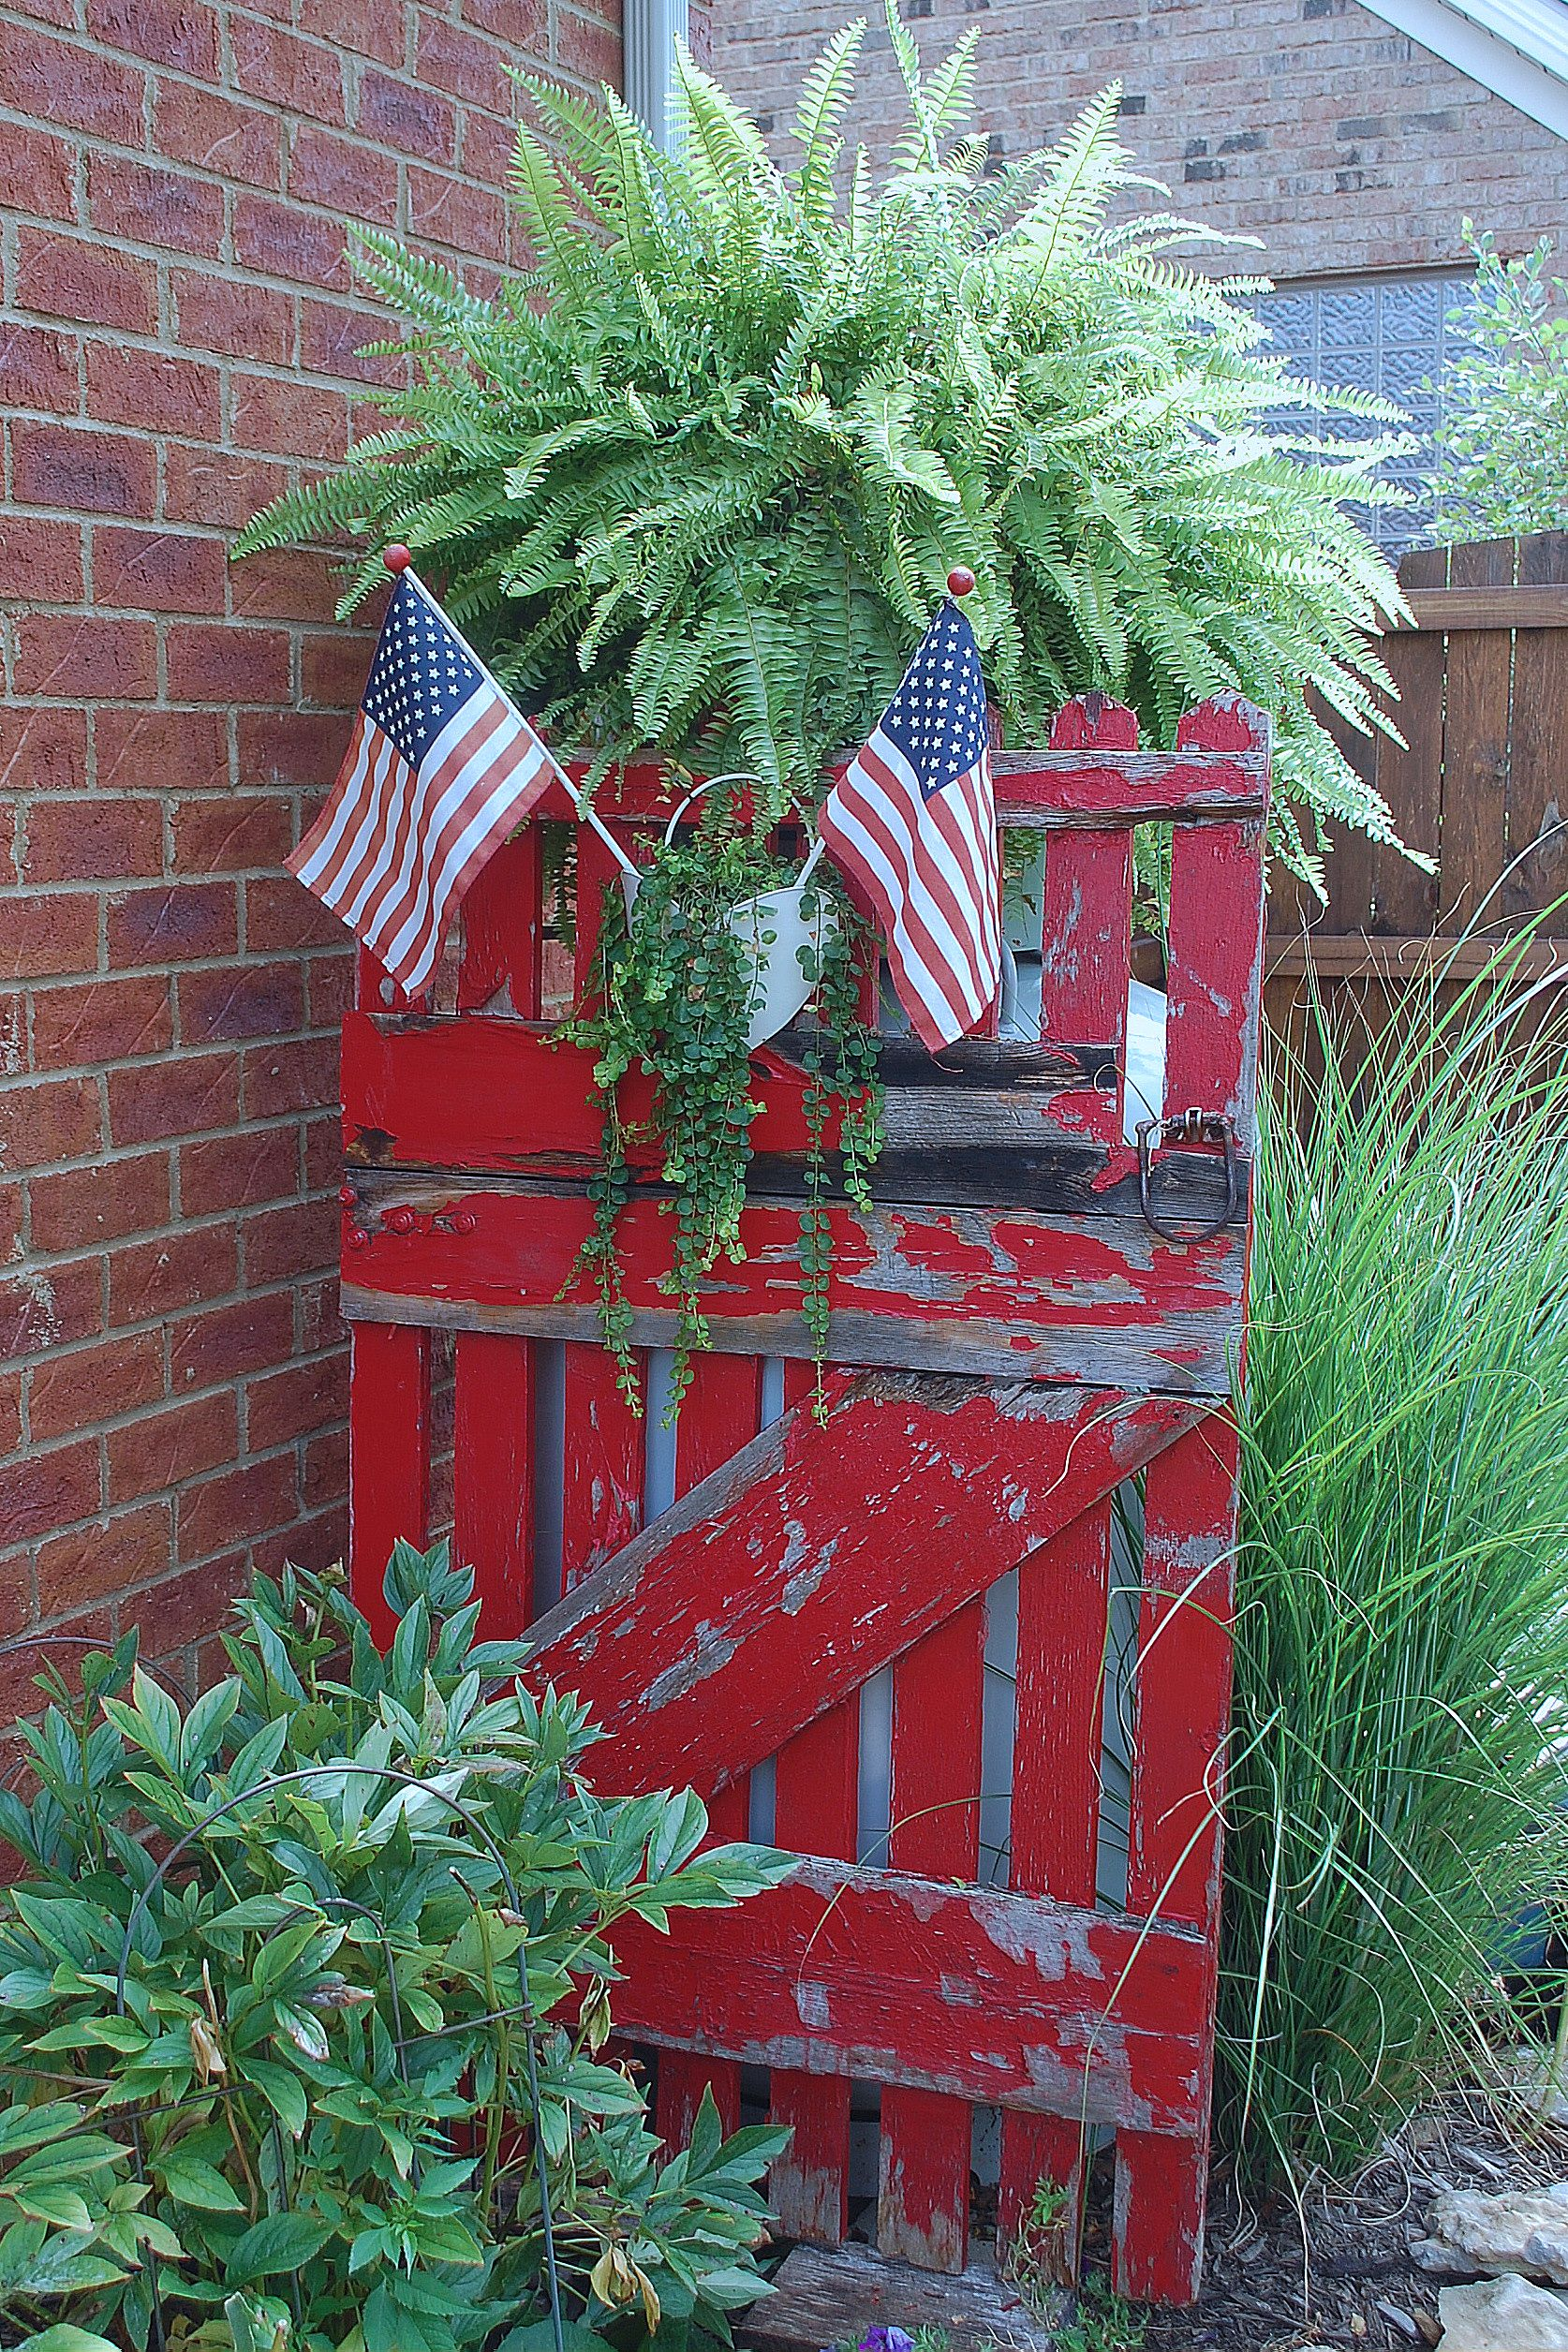 Used an old gate to cover up our upright propane tank garden ideas pinterest gate gardens - Garden ideas to hide fence ...